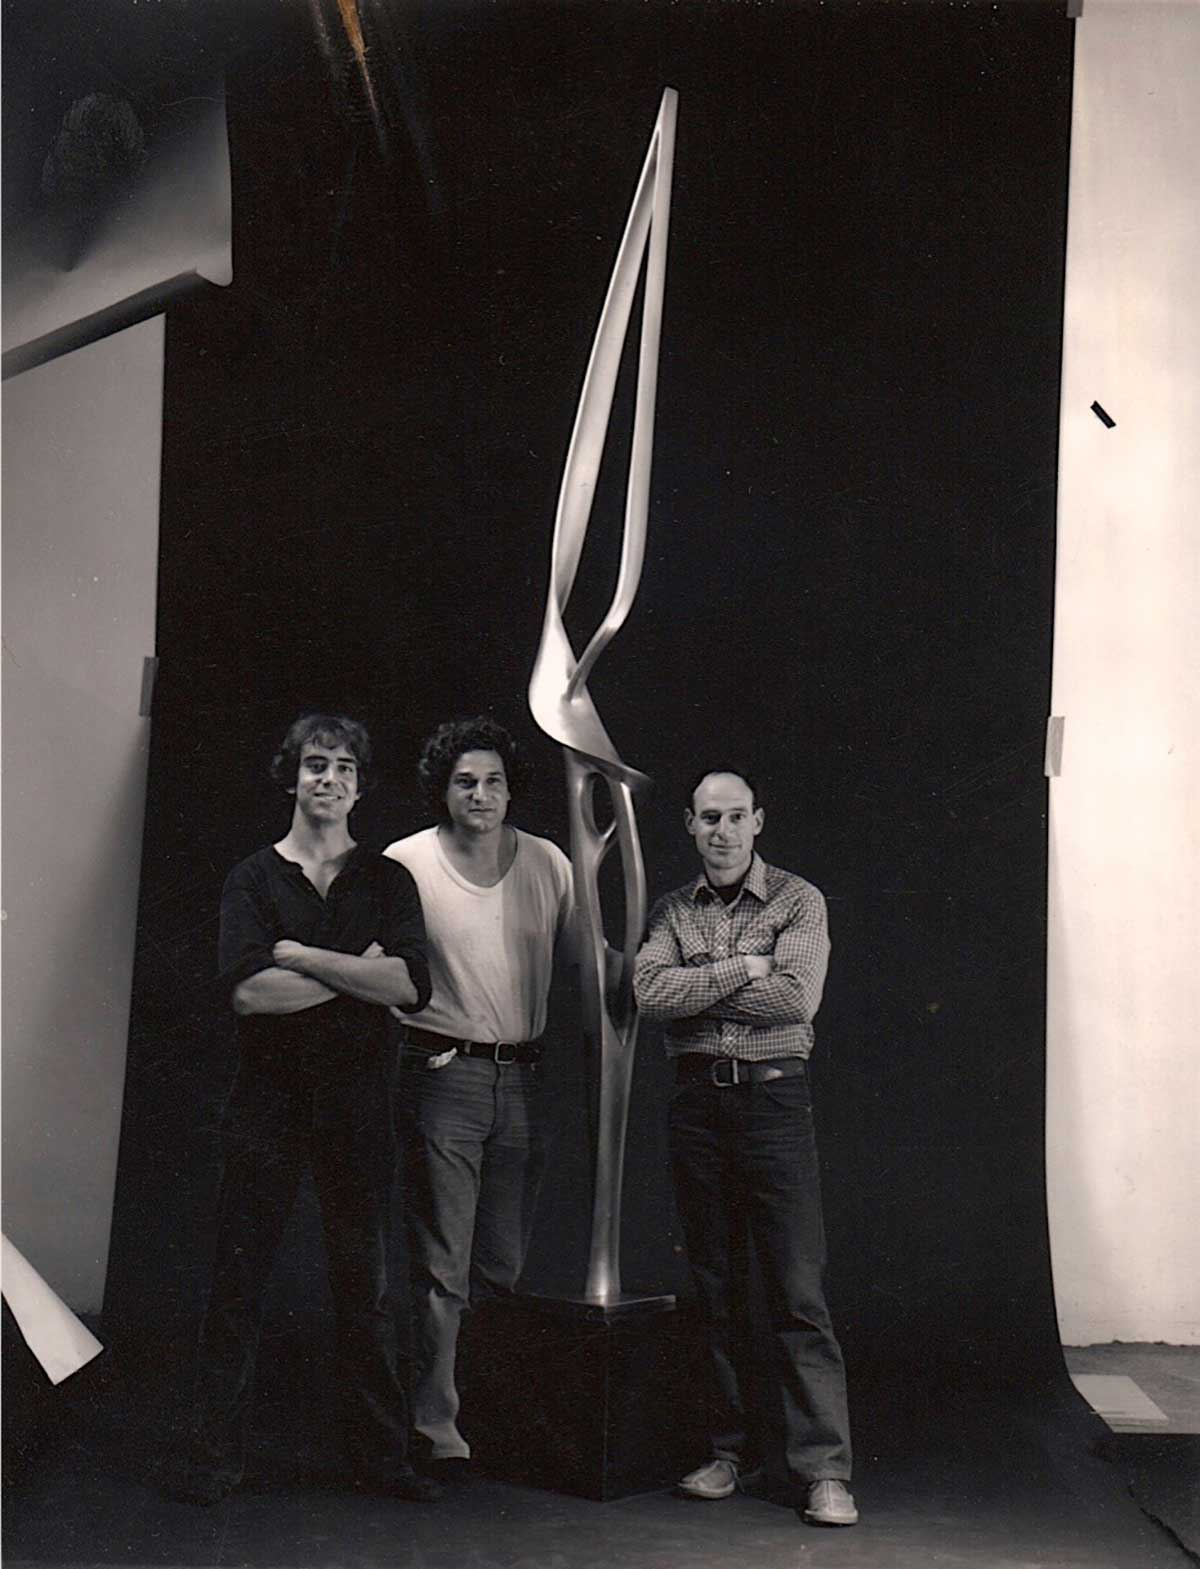 Elliot Midwood, AFA Founder far right, the client Jonathan Hirschfeld center, and his photographer on the right.